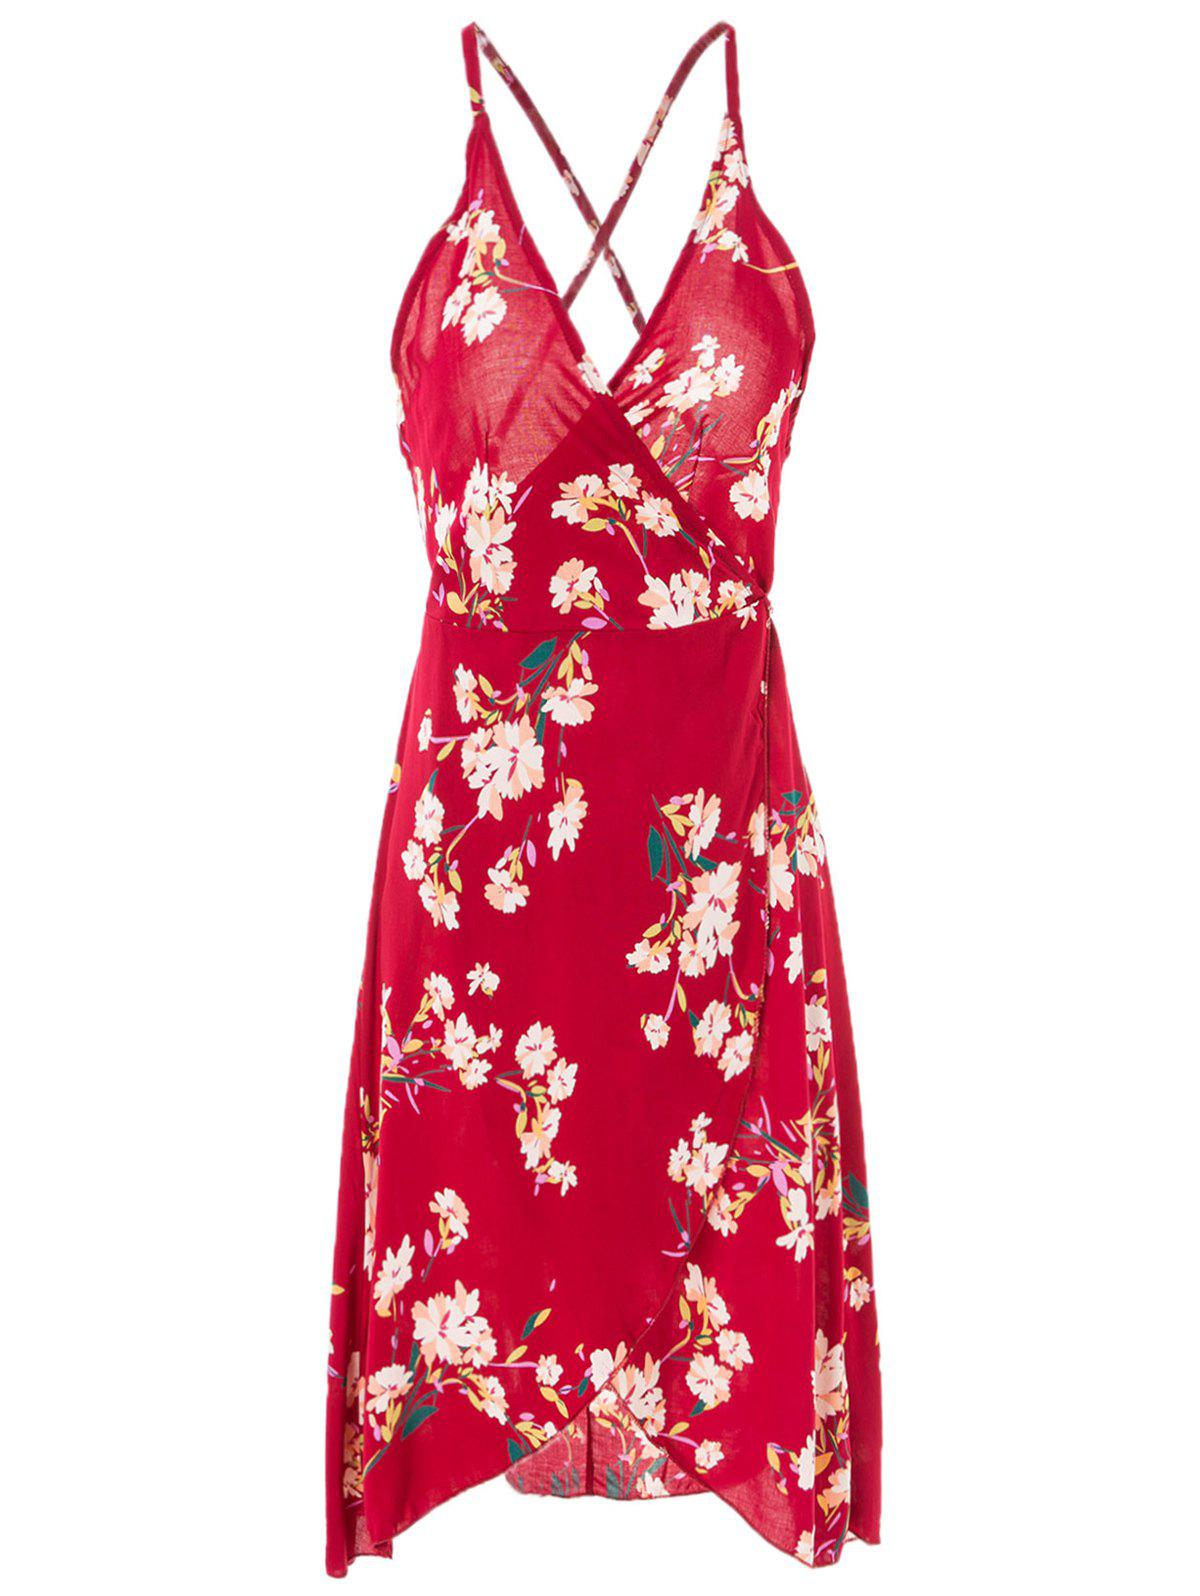 Sexy Women's Spaghetti Strap Floral Print Cross Back Dress - WINE RED M